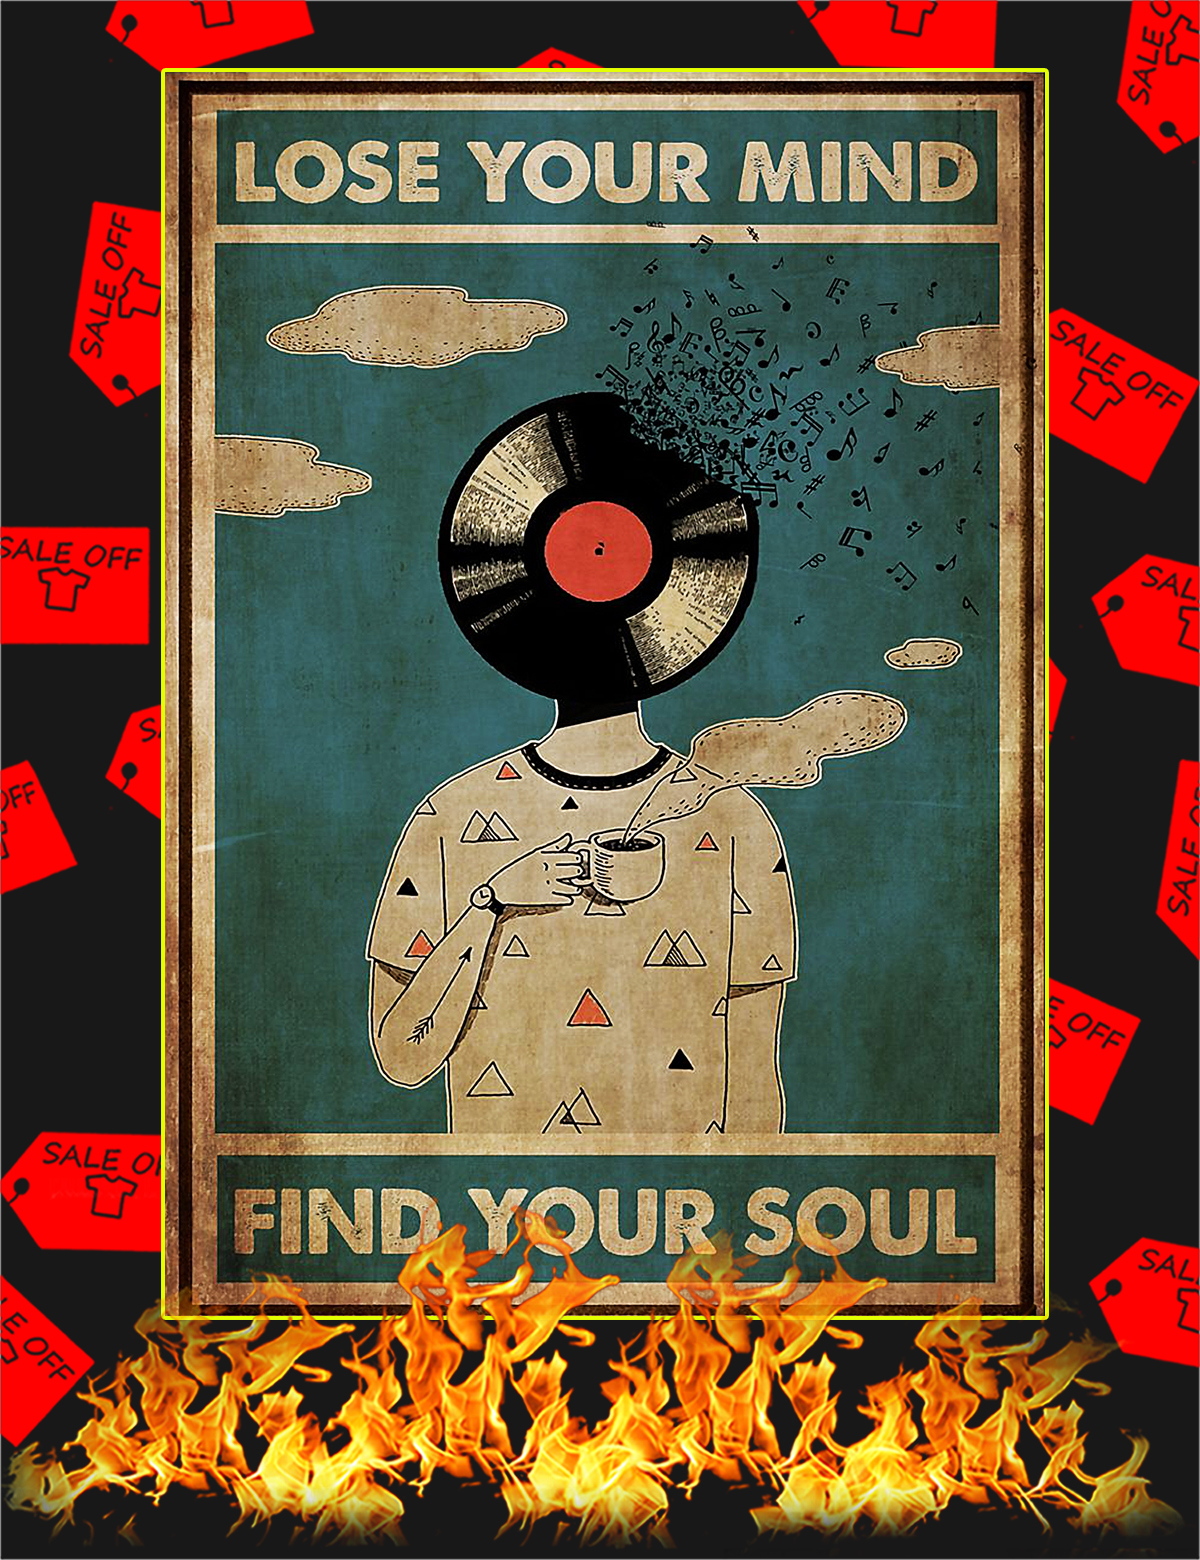 DJ lose your mind find your soul poster - A4